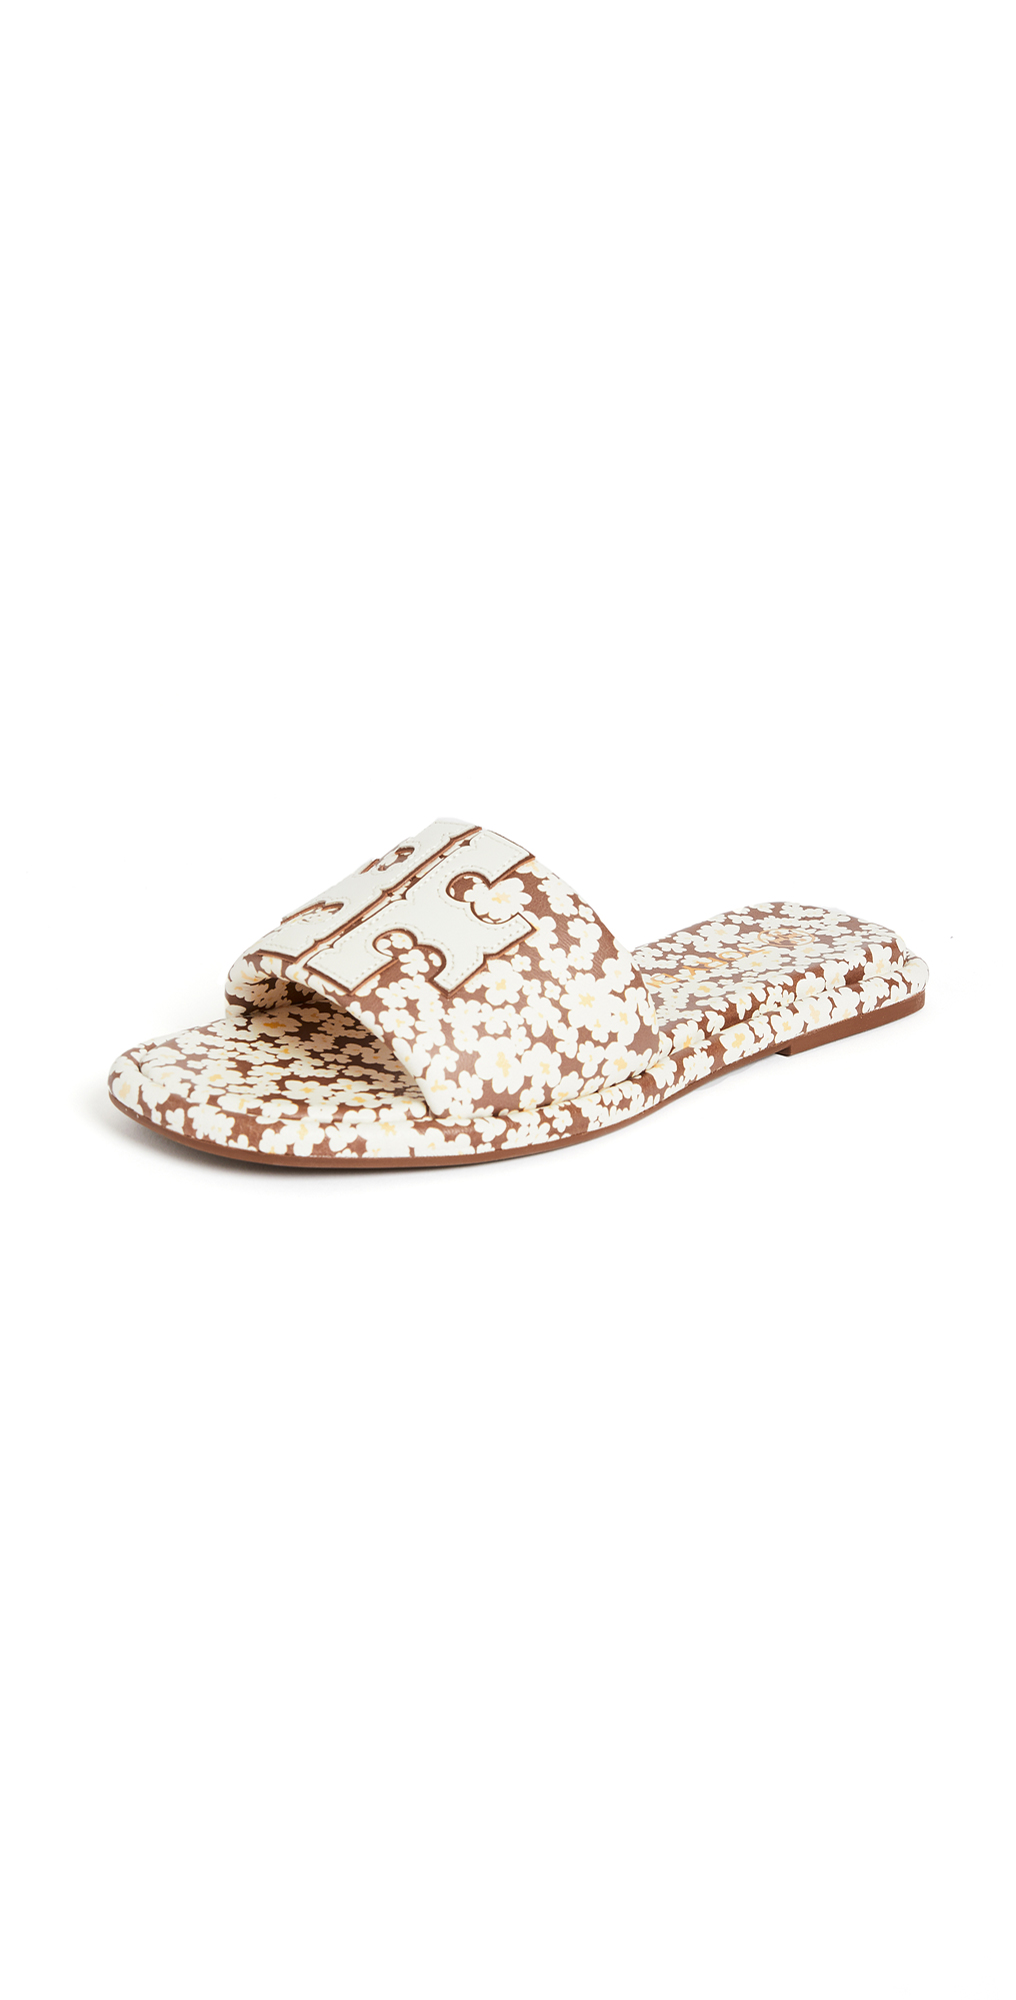 Tory Burch Double T Sport Slides